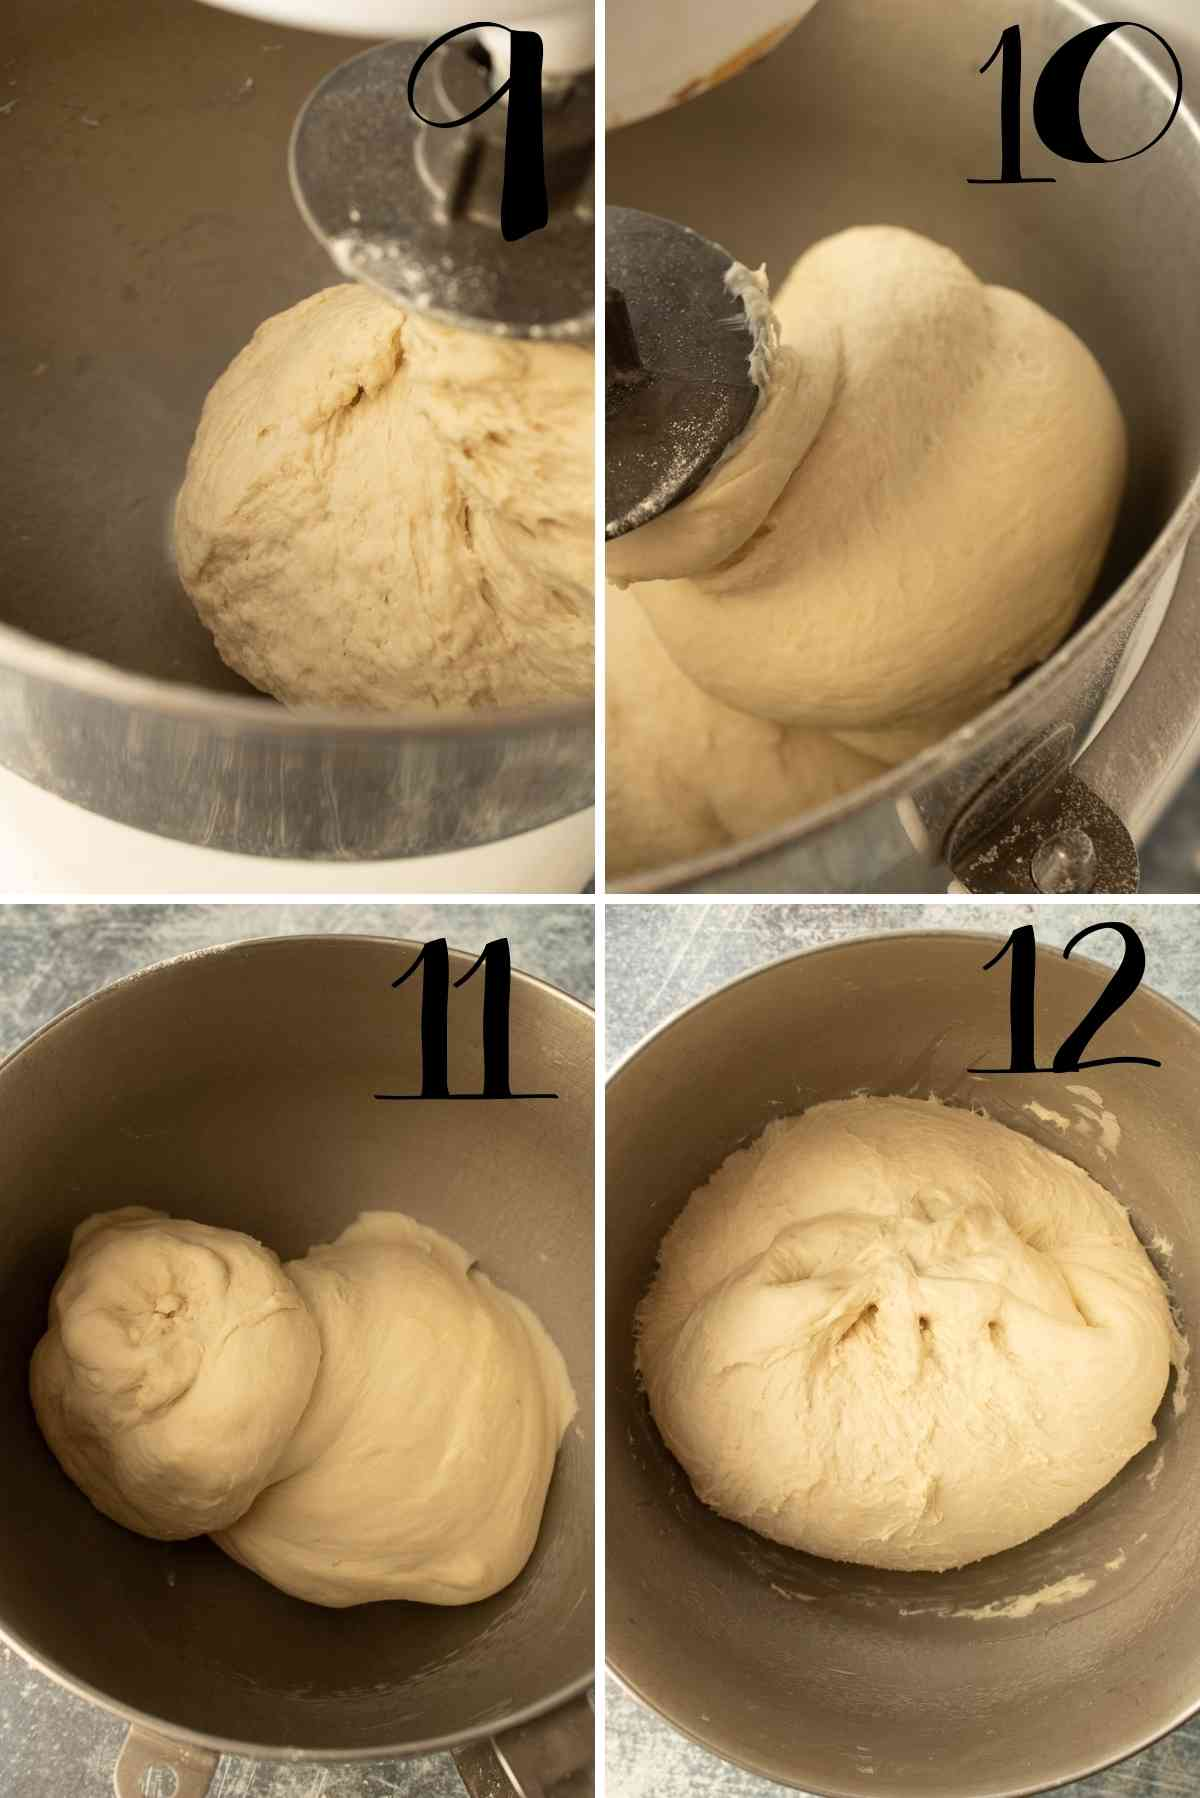 Dough when first being kneaded to what it looks like after kneading.